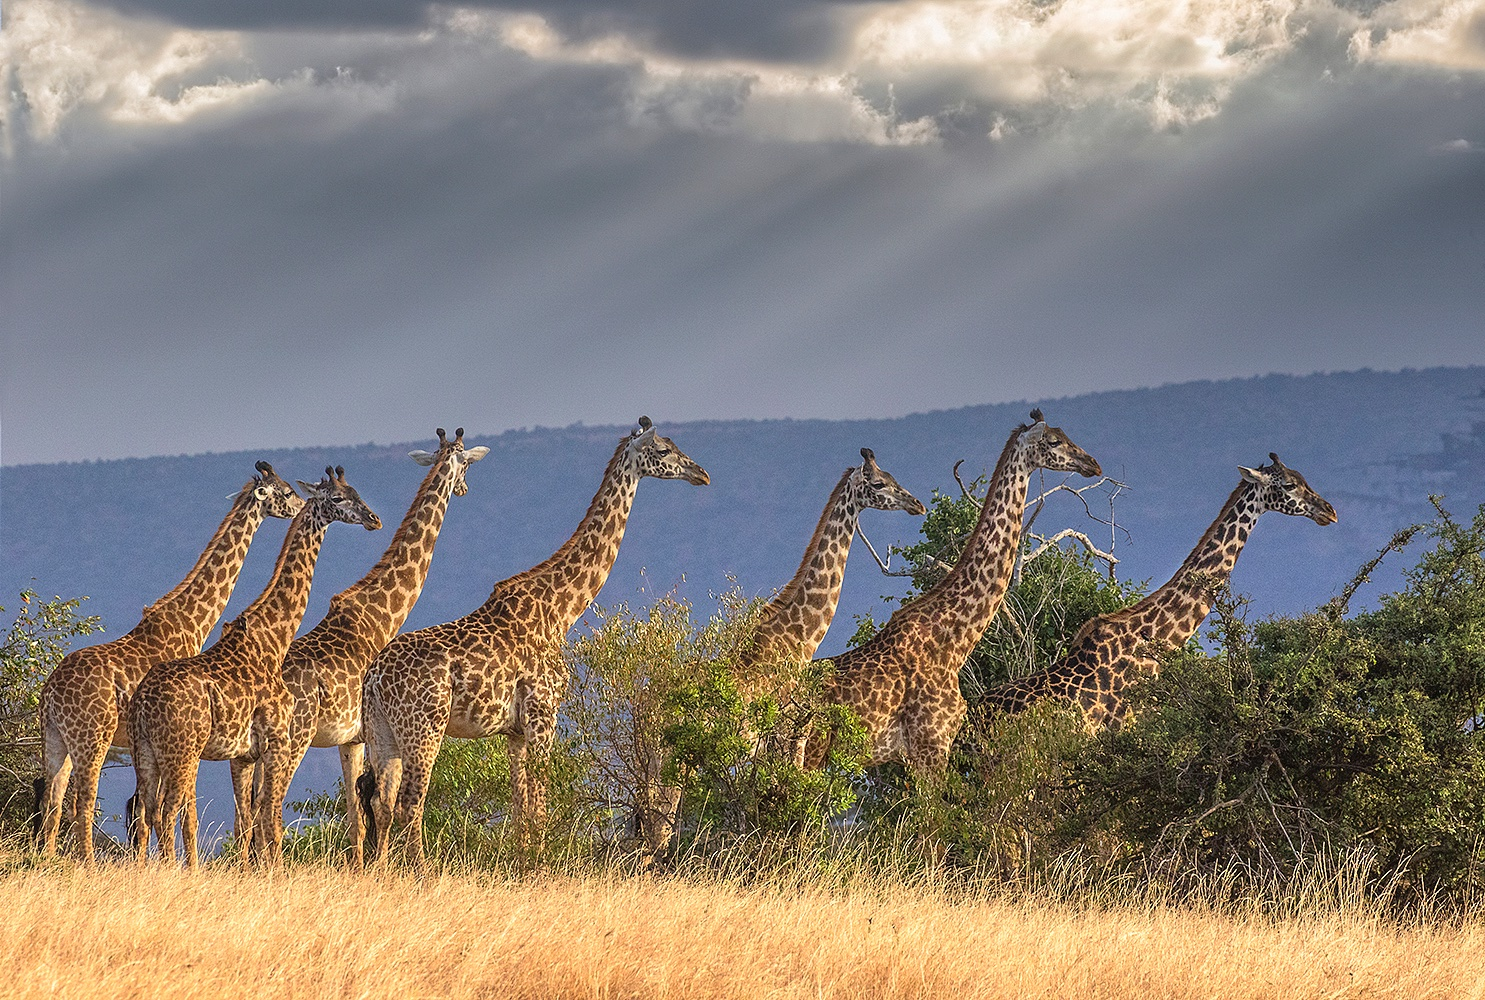 A tower of giraffes - Jim Zuckerman Photography